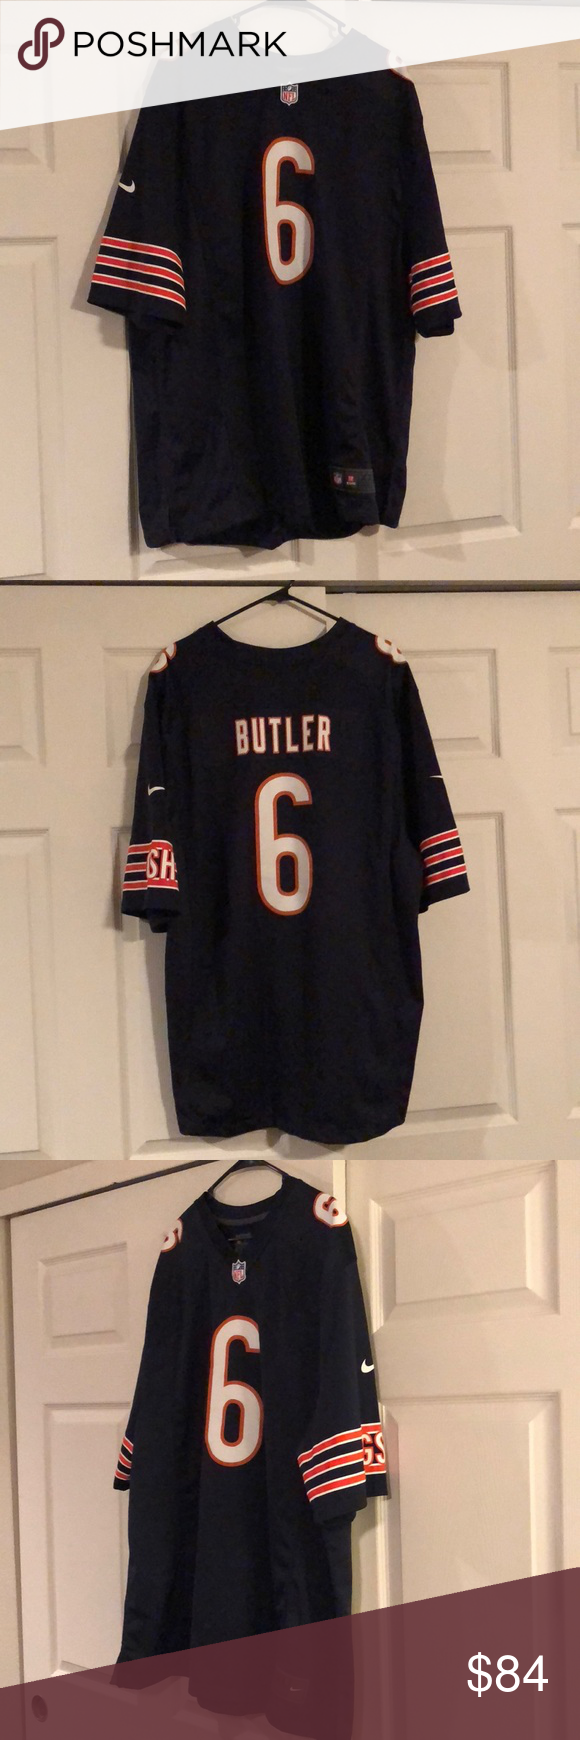 Kevin Butler 6 Chicago Bears Jersey Chicago Bears Jersey Nike Shirts Clothes Design